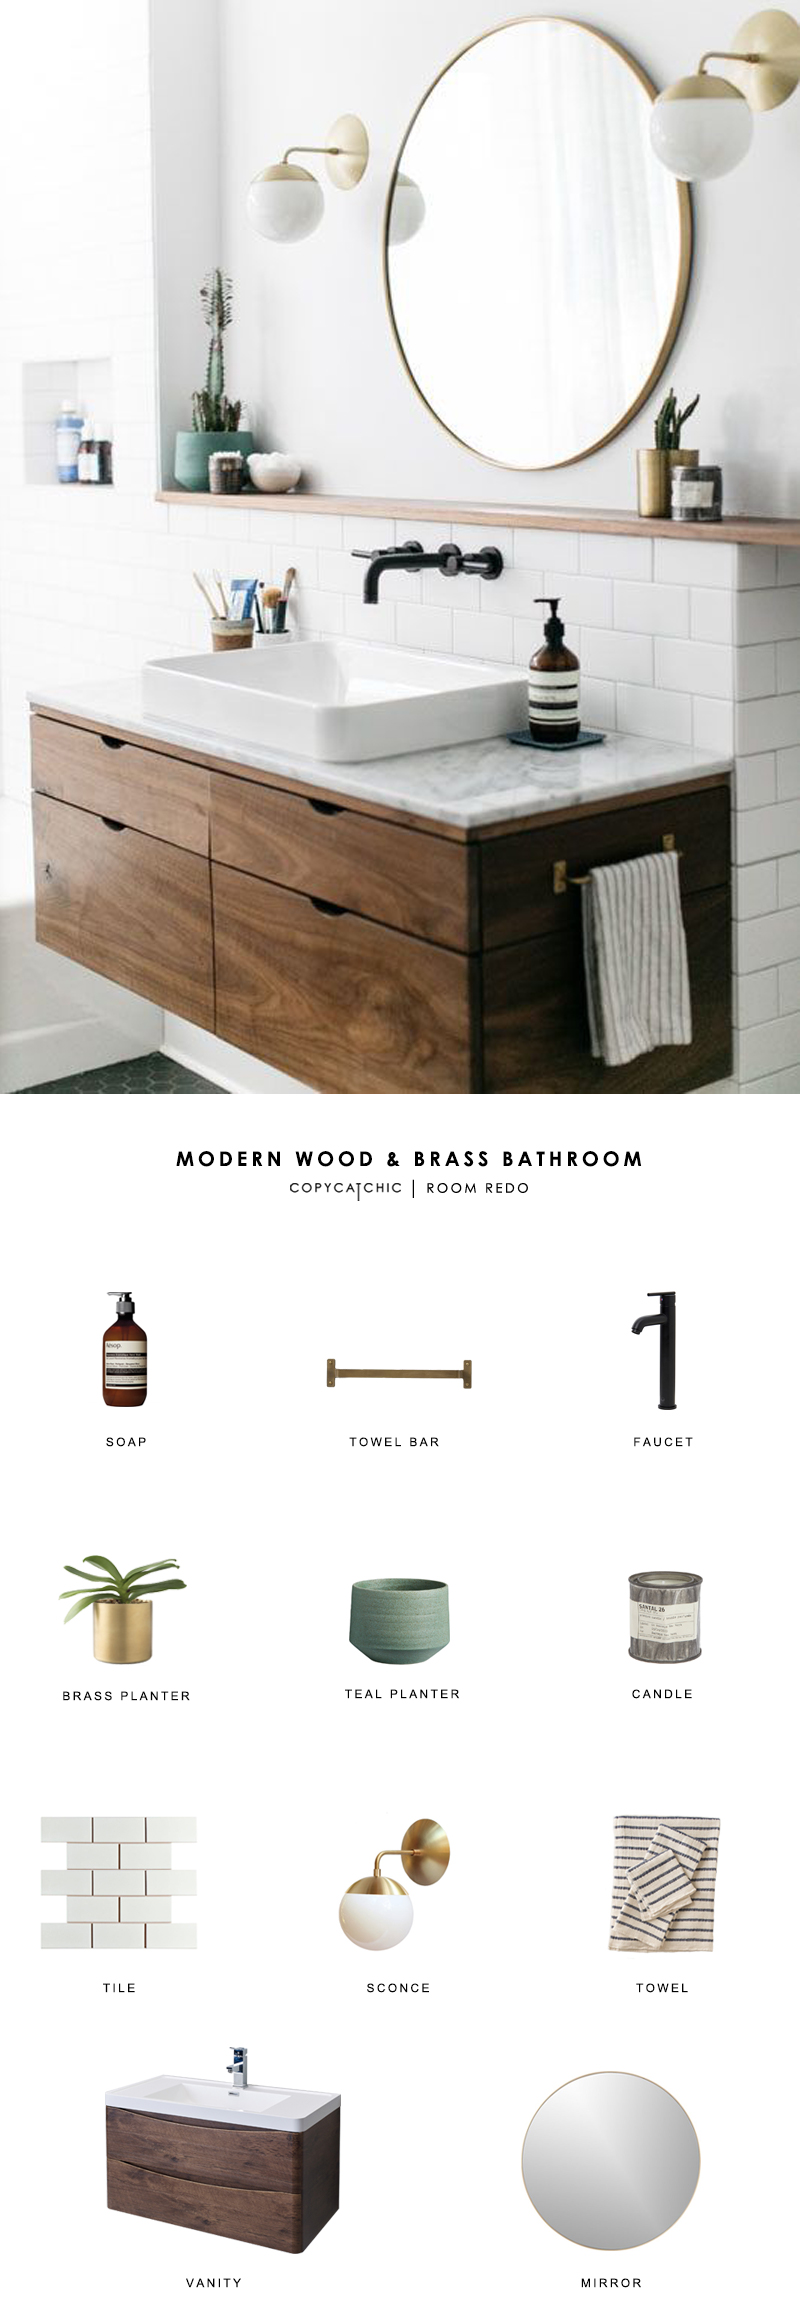 Copy Cat Chic Room Redo Modern Wood And Brass Bathroom